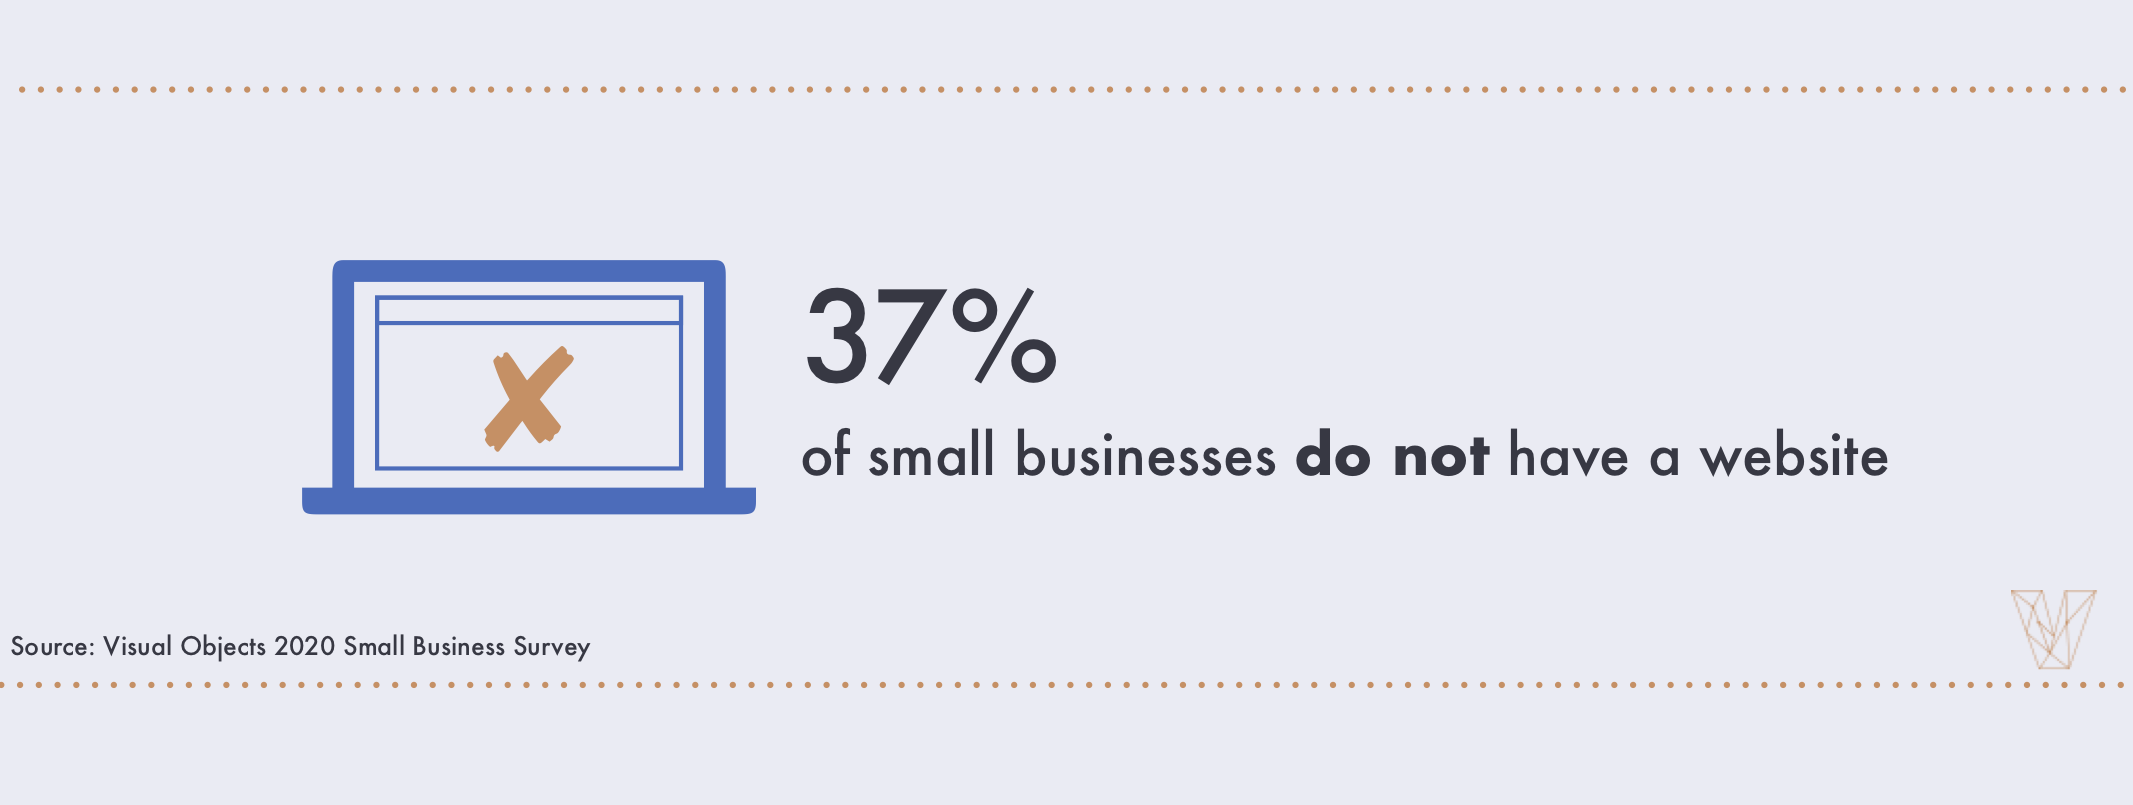 37% of small businesses do not have a website